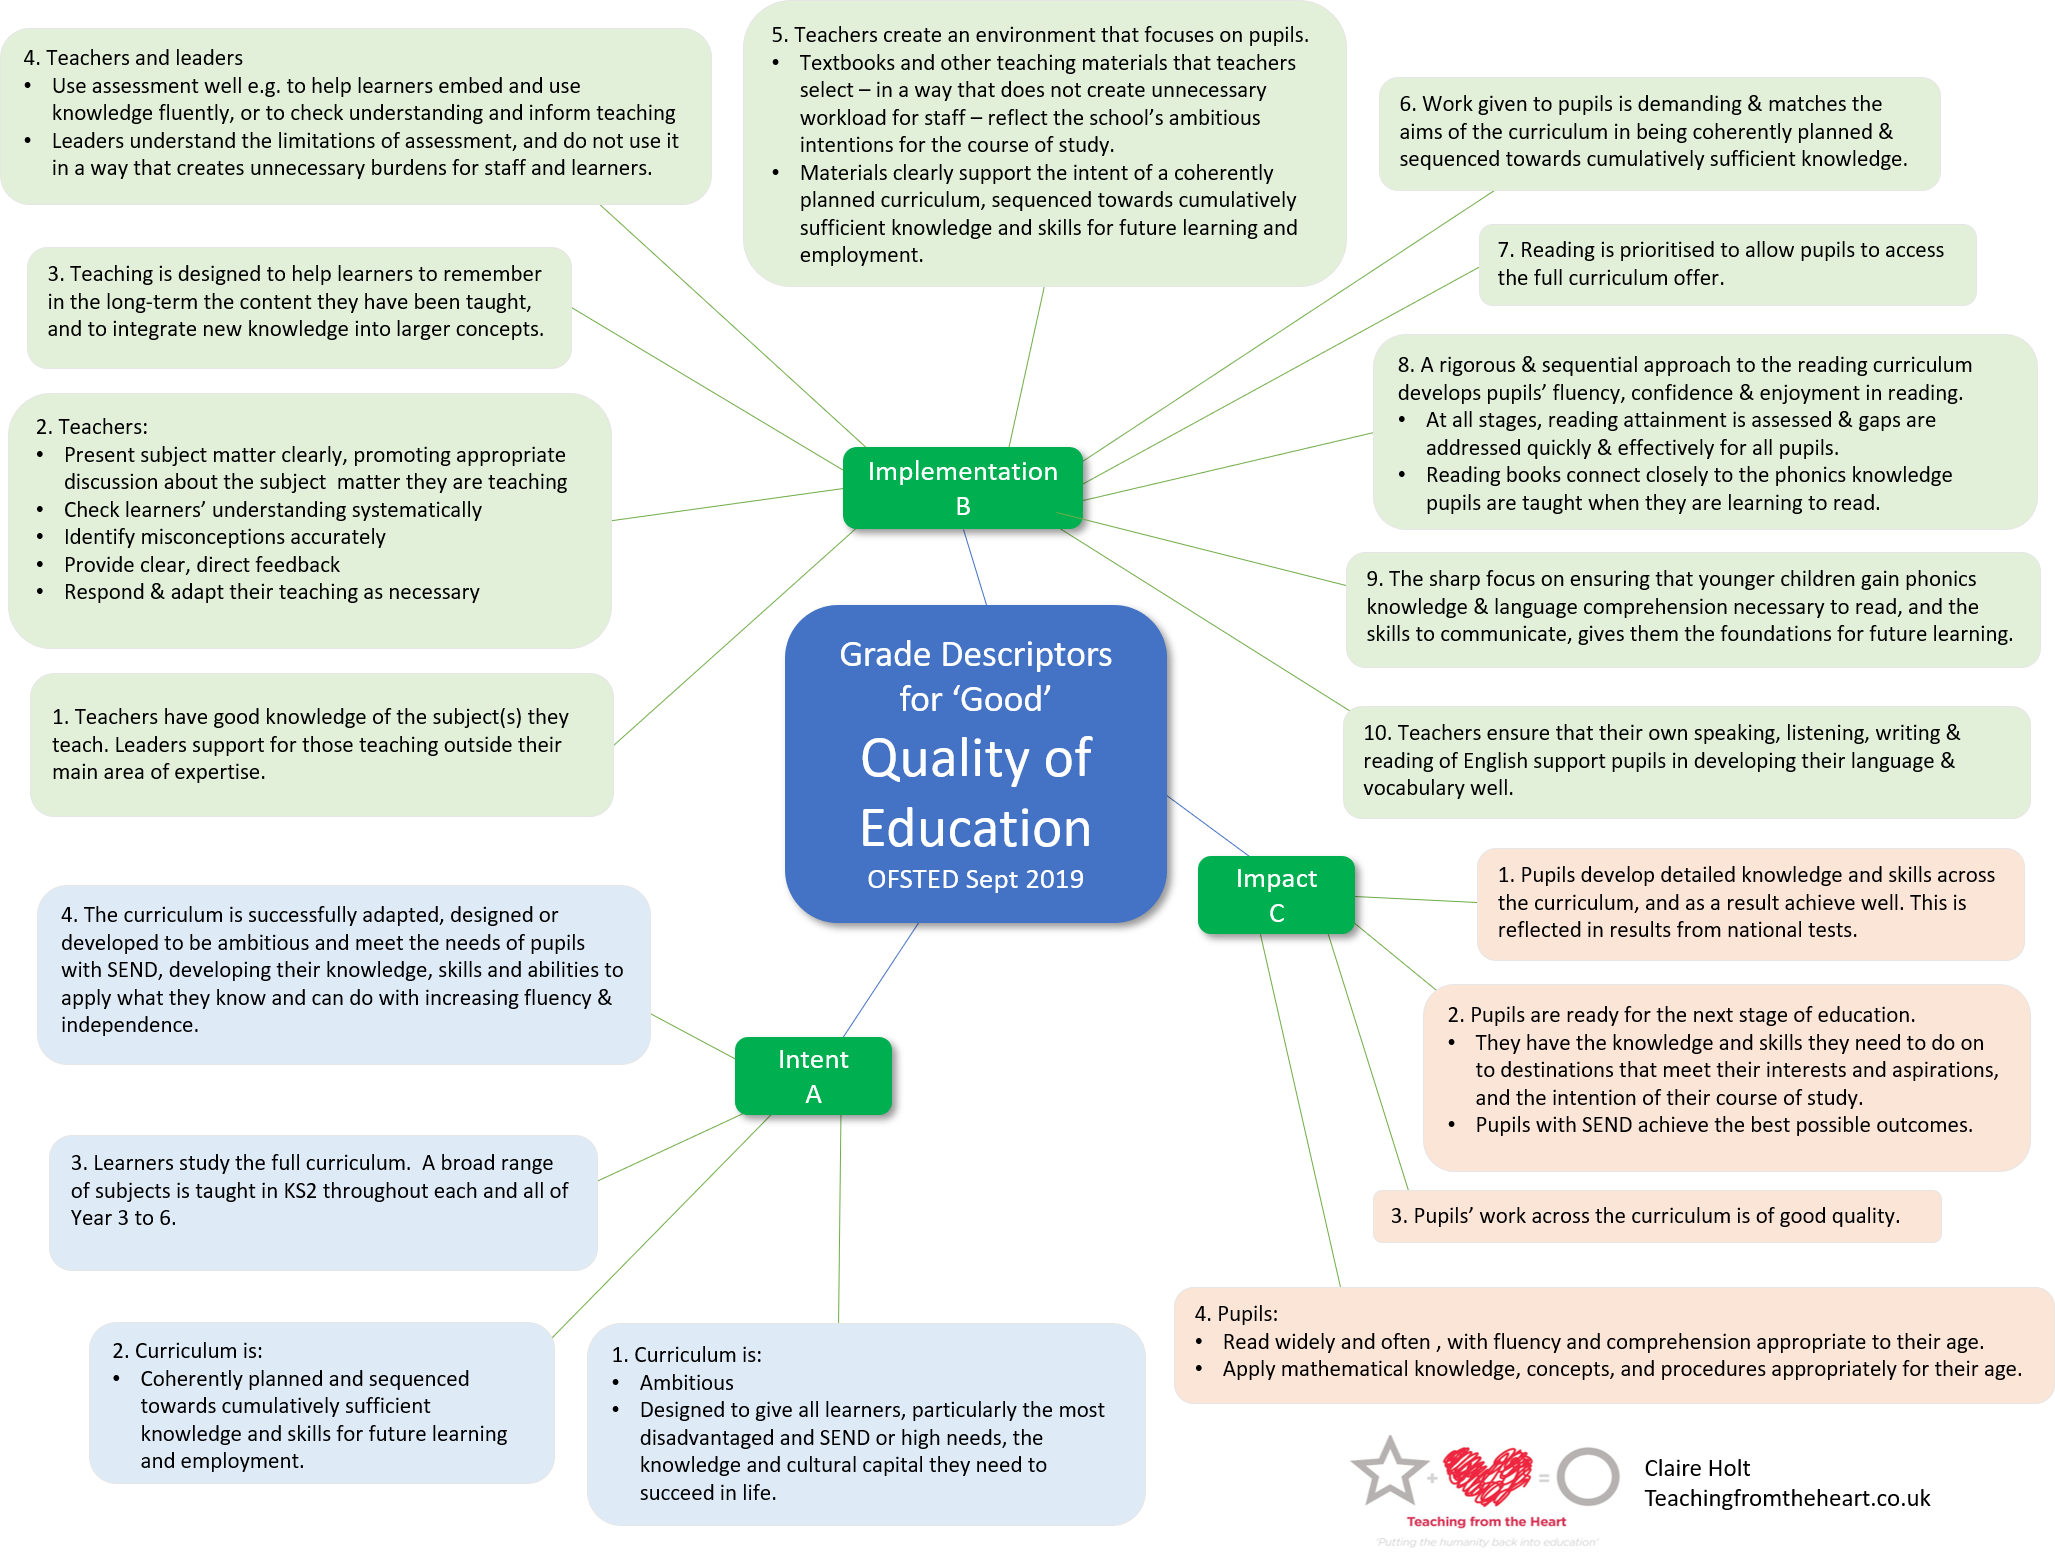 Visual Guide to the New OFSTED Framework 1.png